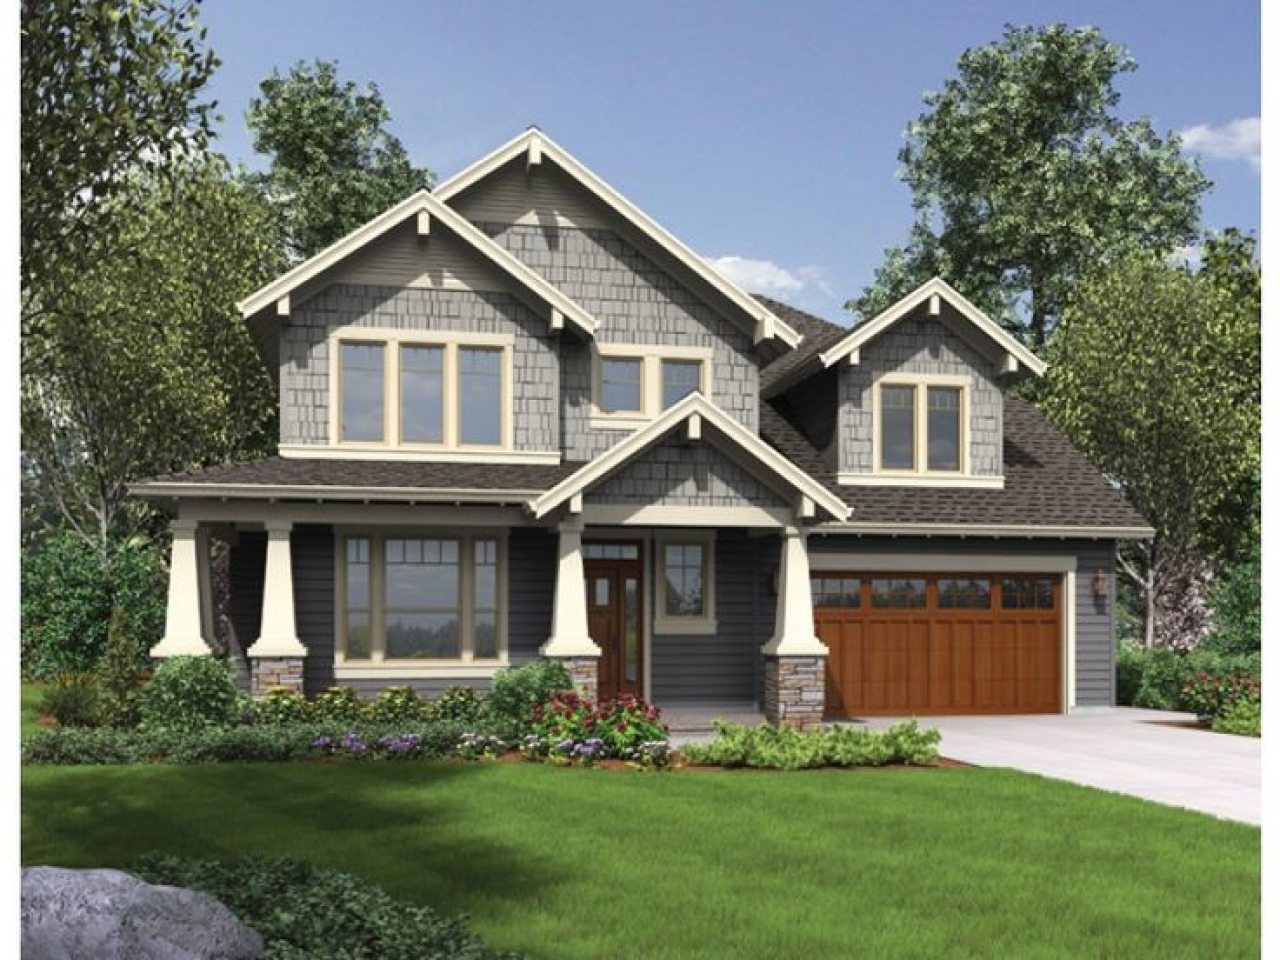 3 bedroom house designs 3 bedroom craftsman house plans for 9 bedroom house plans